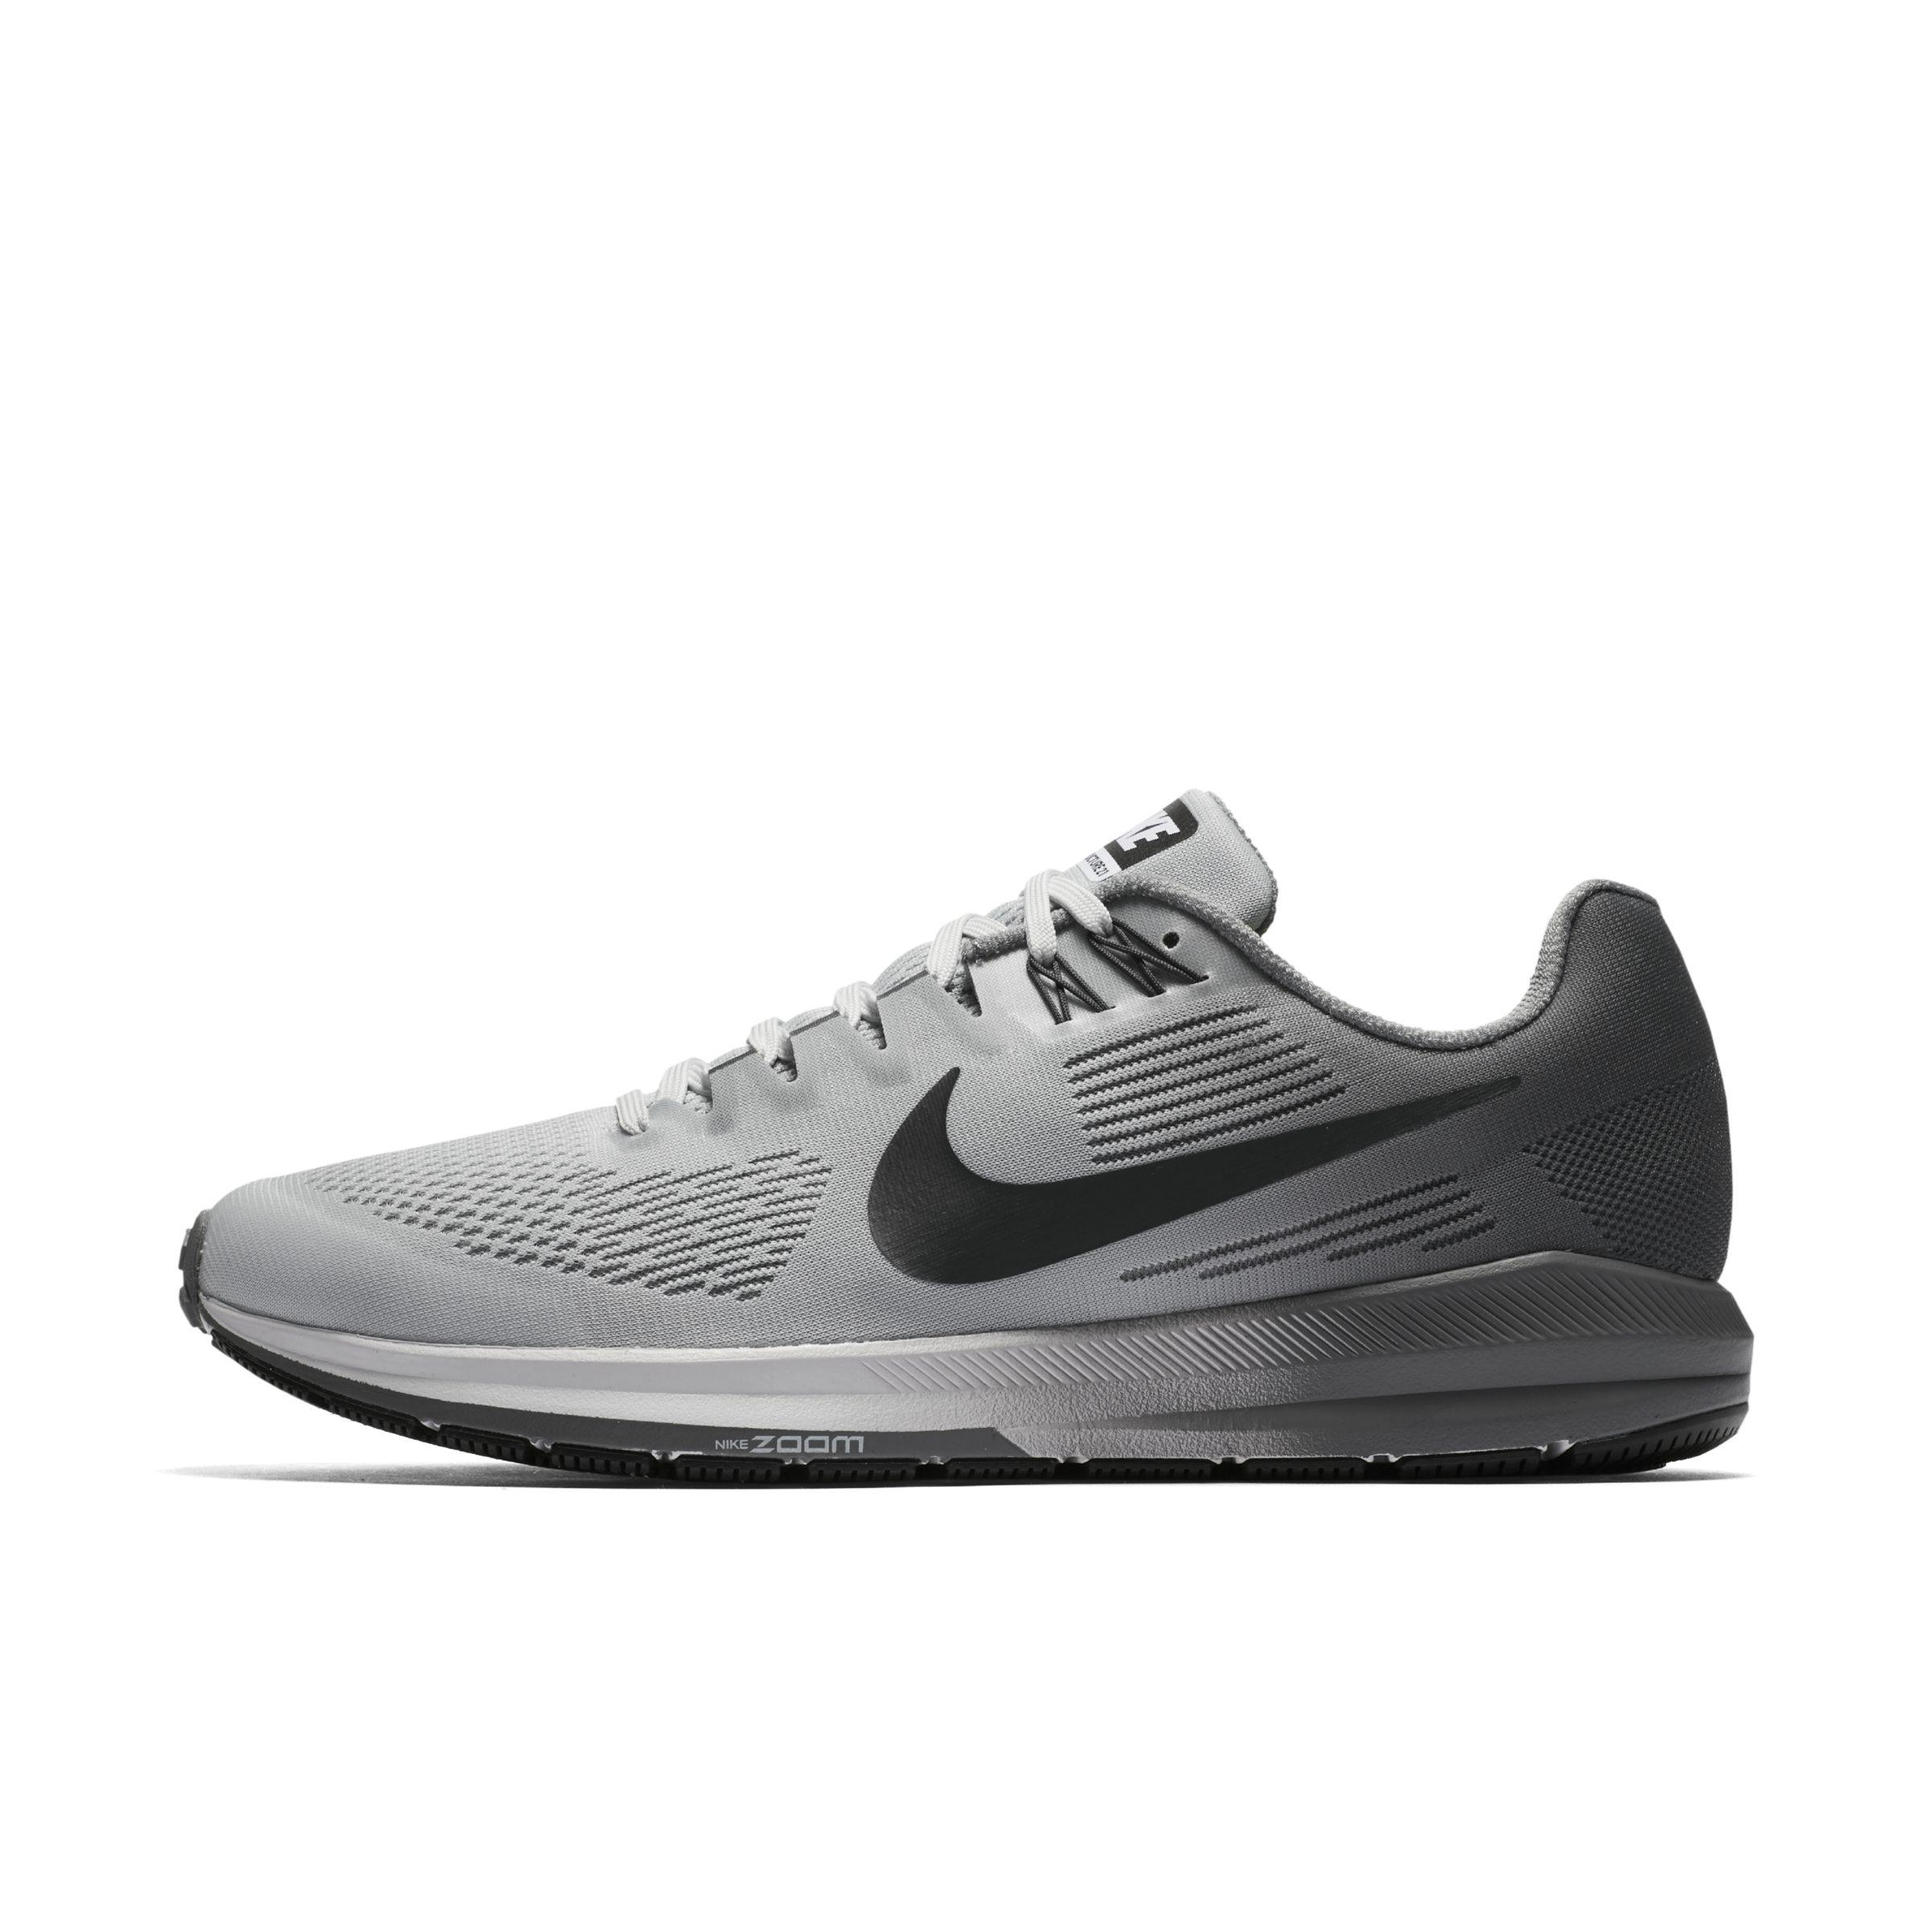 7ccb1d8ef45 Nike Air Zoom Structure 21 Running Shoes in Metallic for Men - Lyst